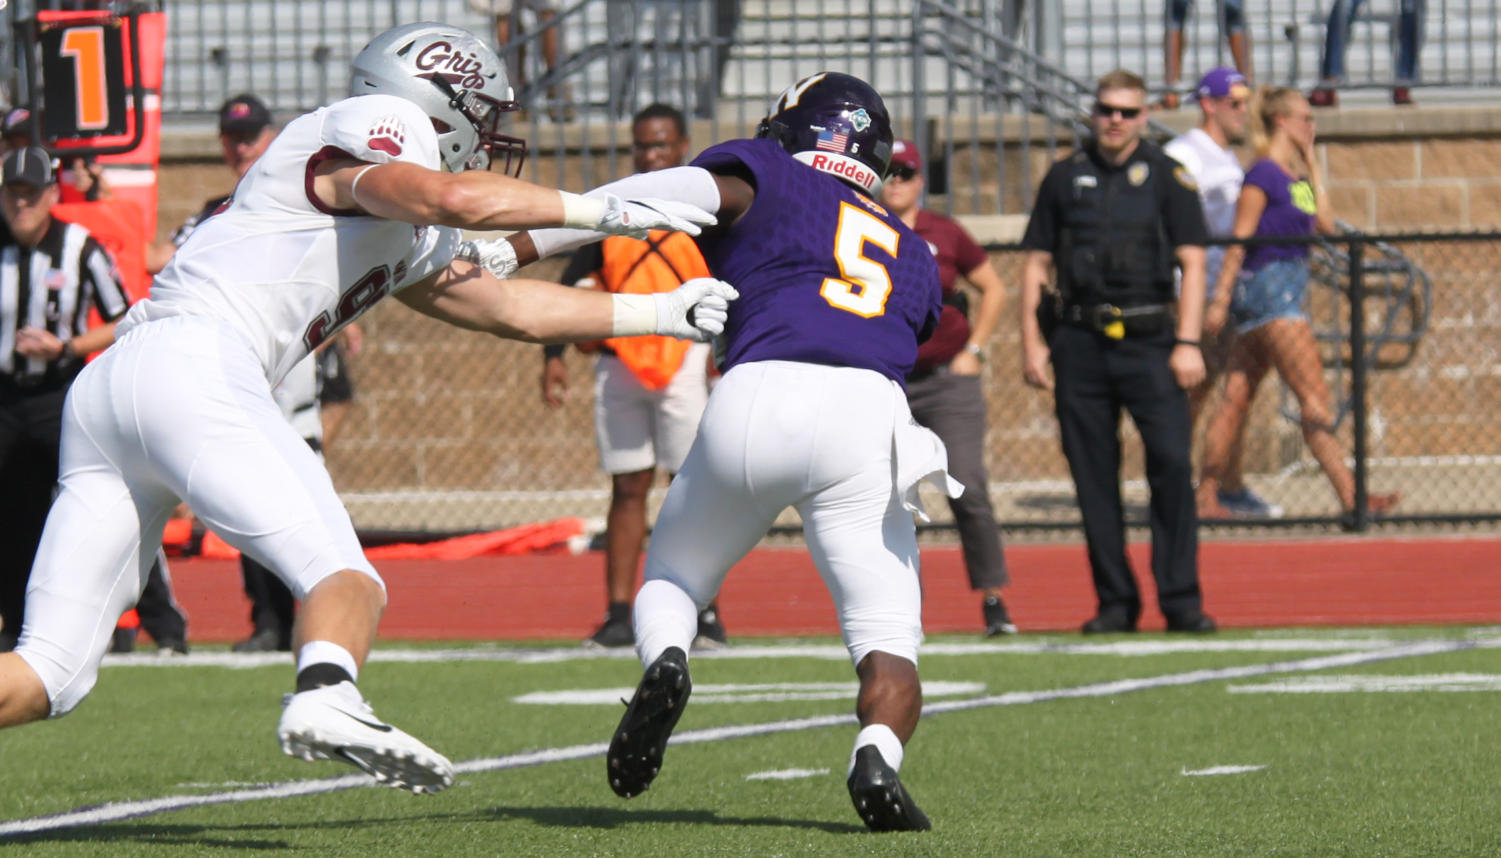 Senior runningback Steve McShane fights off a Montana Griz defender as he looks for more yards in the Leathernecks' home opener.